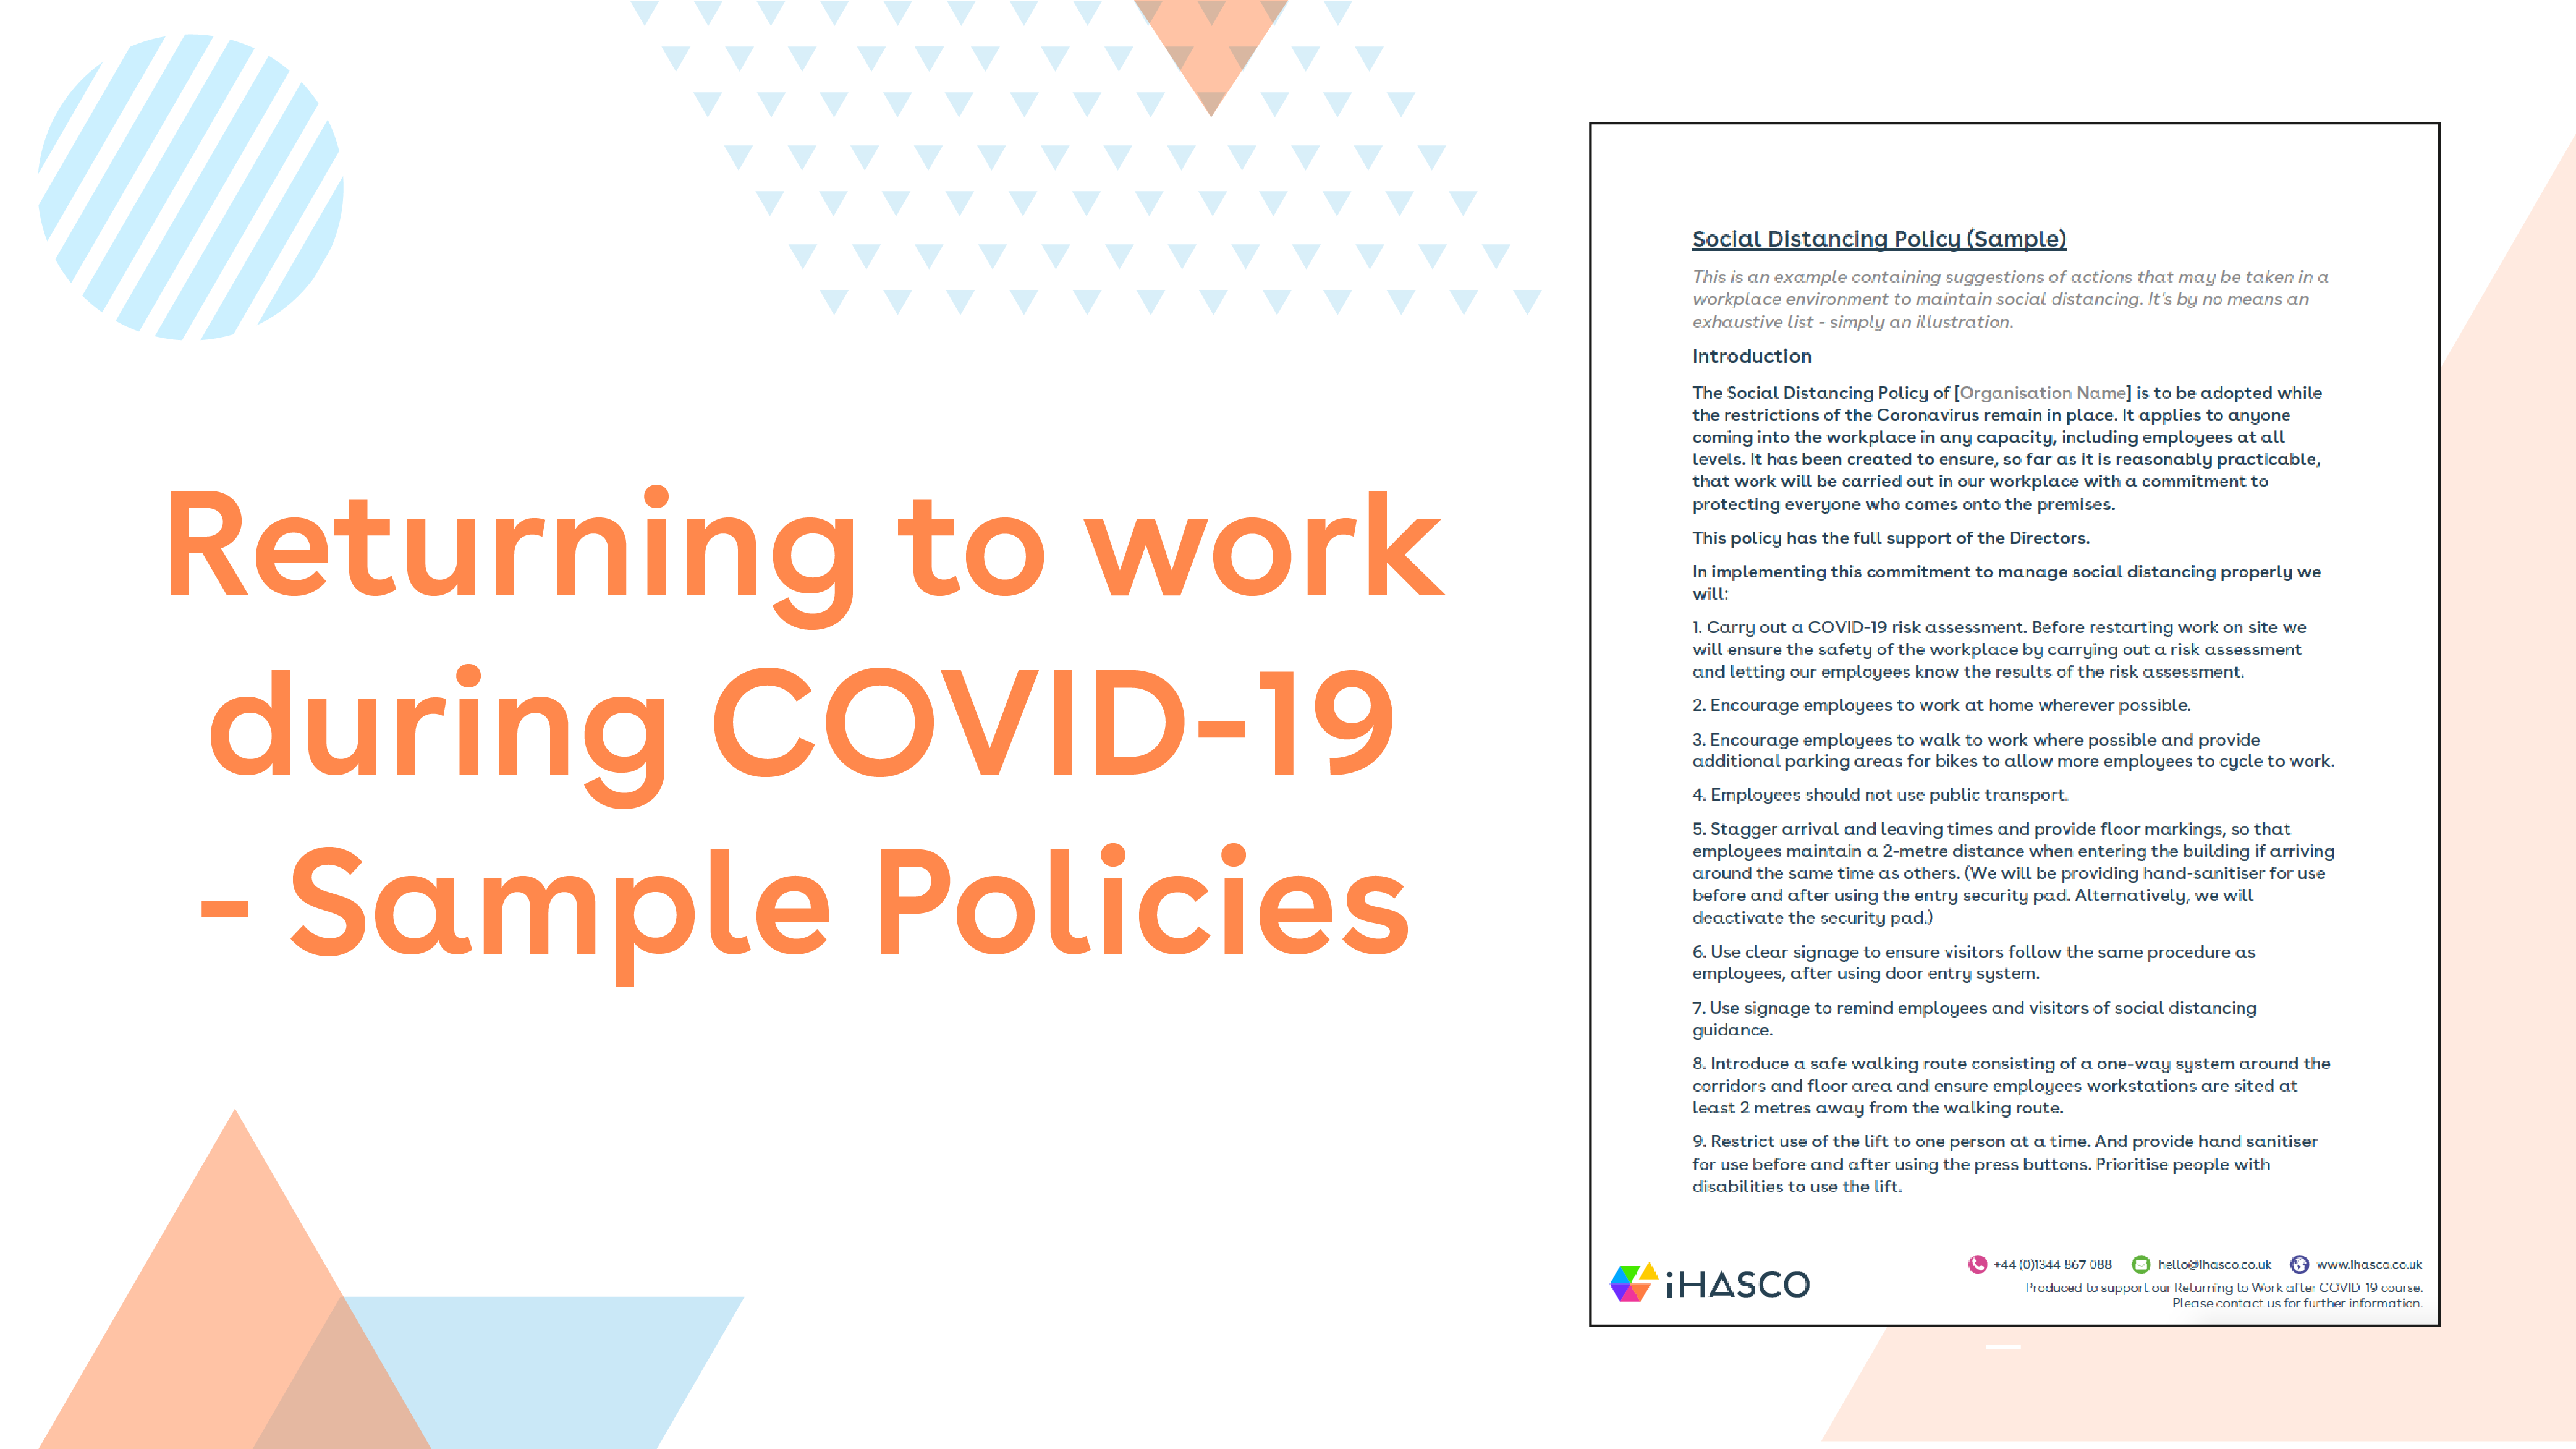 Returning to work policy samples